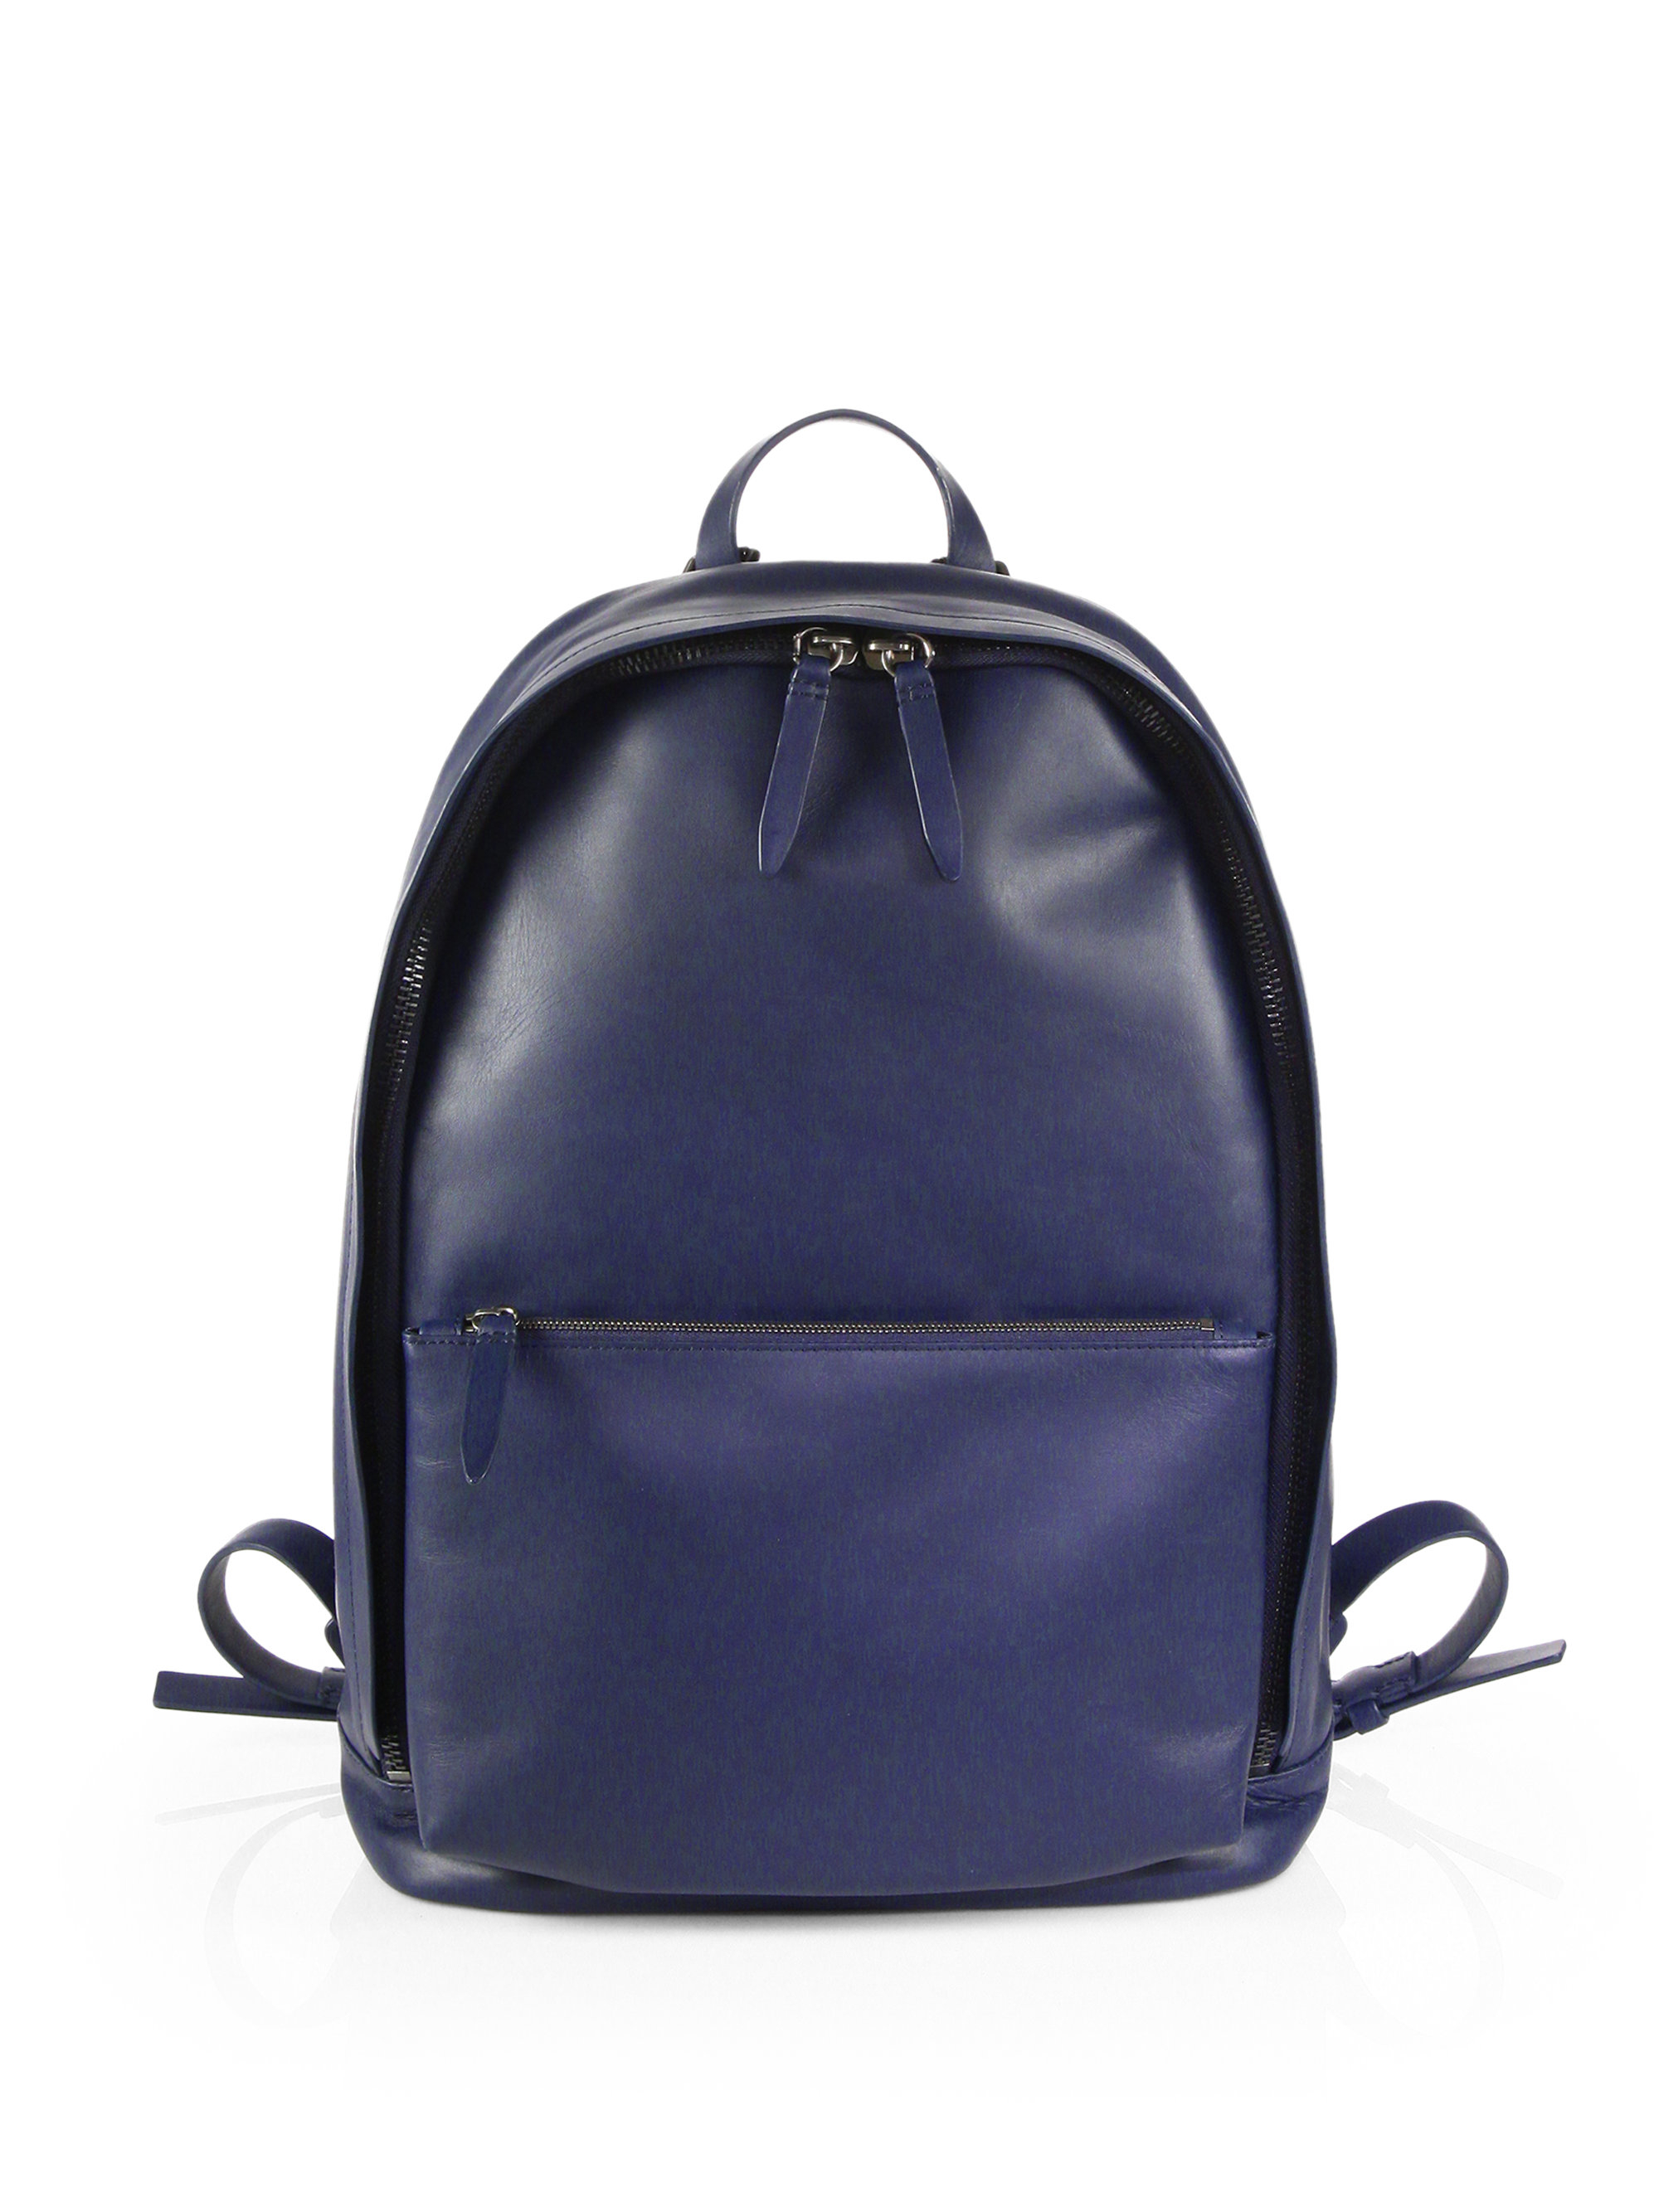 Blue Leather Backpack JHhjqzR9